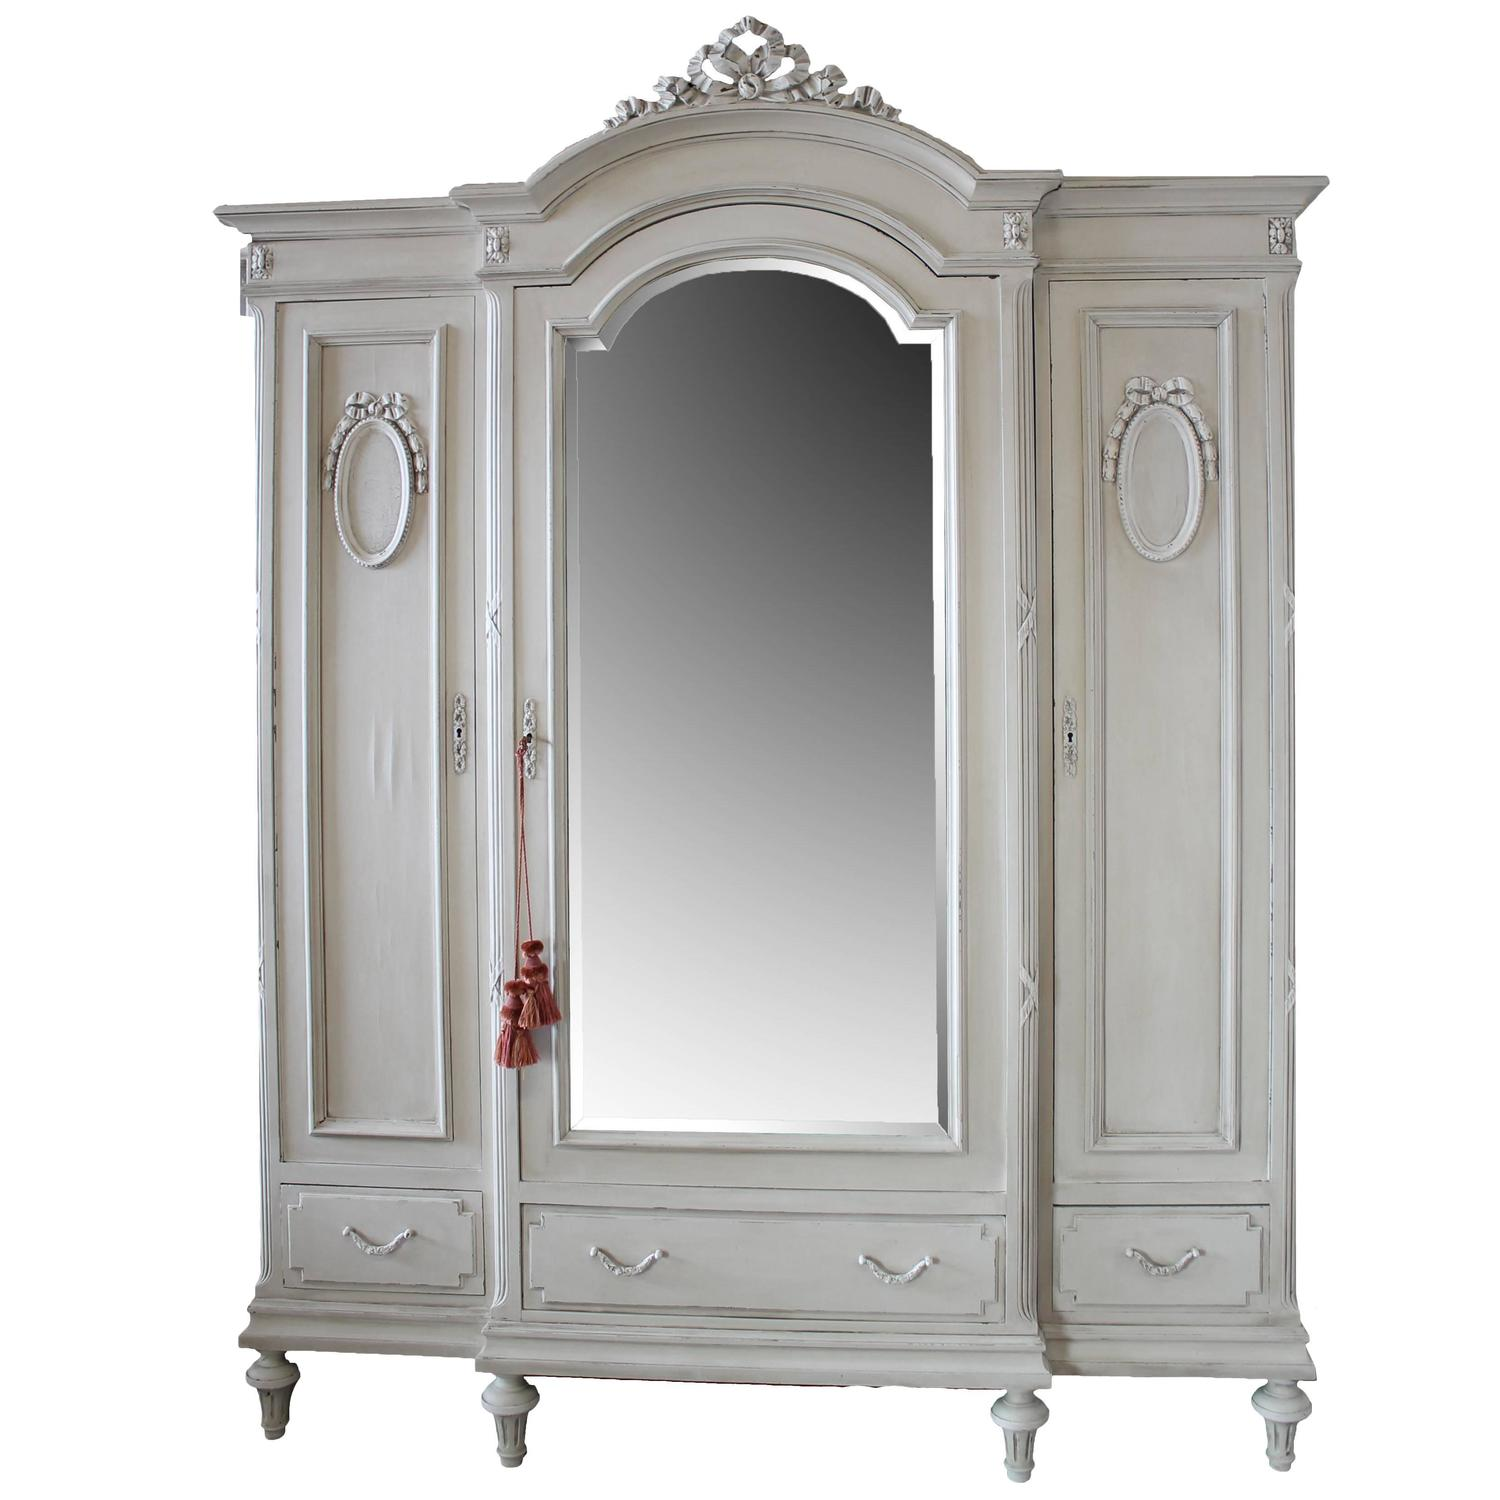 antique painted french country armoire in the louis xvi. Black Bedroom Furniture Sets. Home Design Ideas